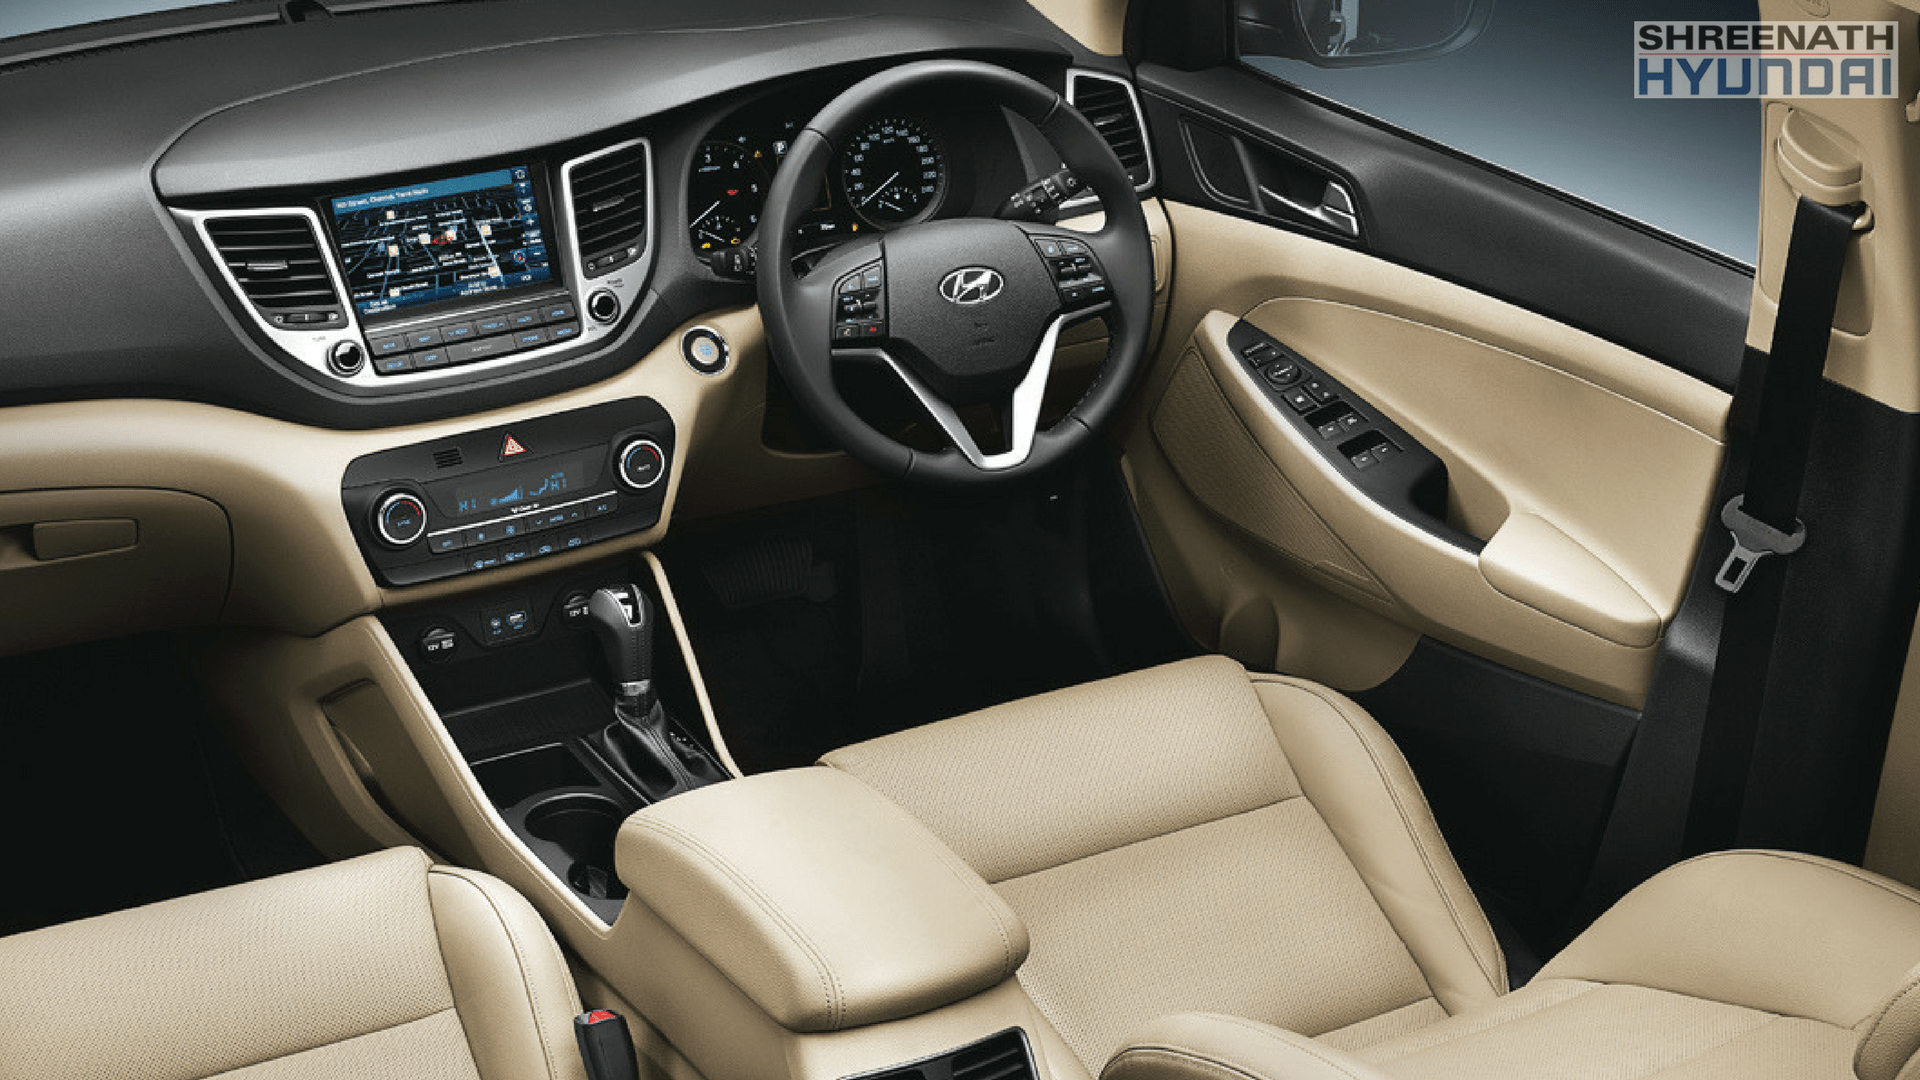 Guide To Protect Your Car Interiors Shreenath Hyundai Mumbai Thane